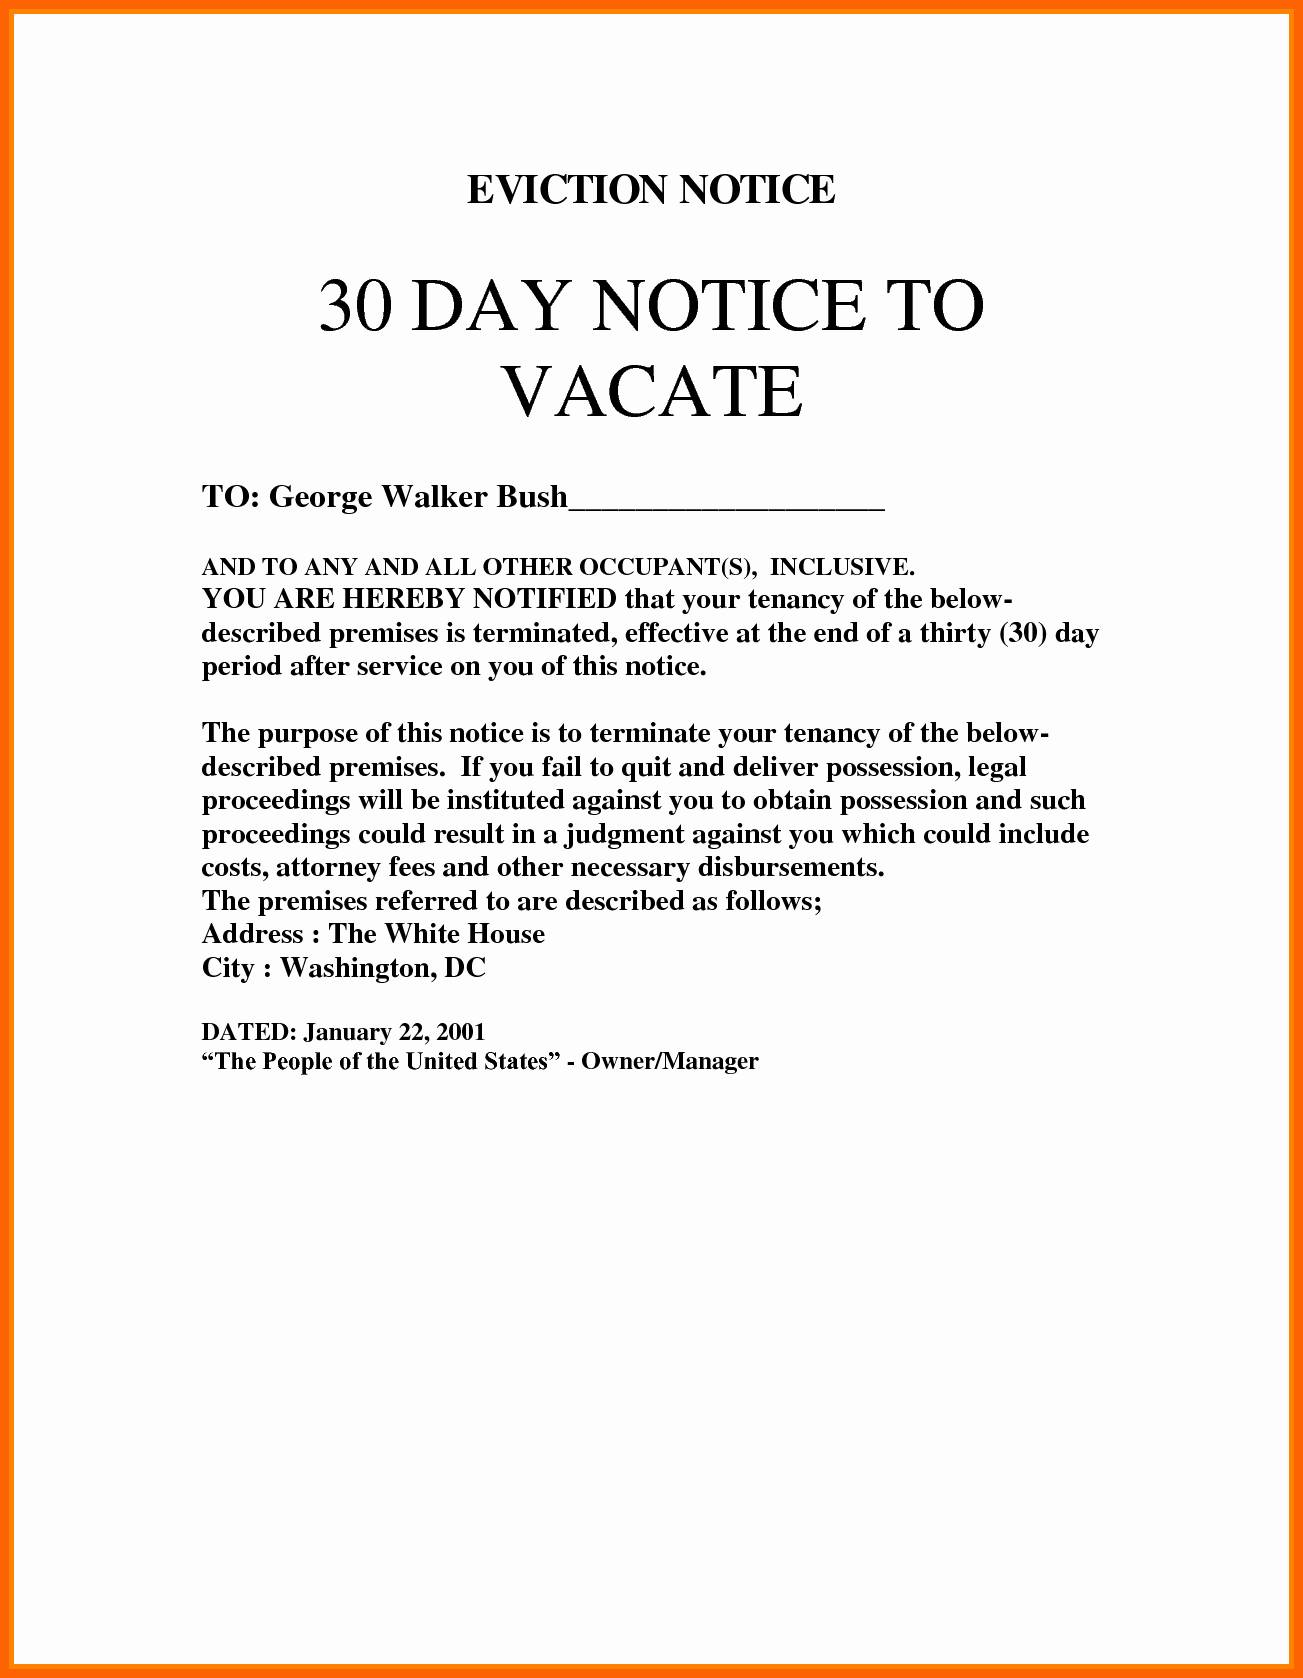 Eviction Letter Template Florida - 3 Day Eviction Notice Florida Template Inspirational Eviction Notice